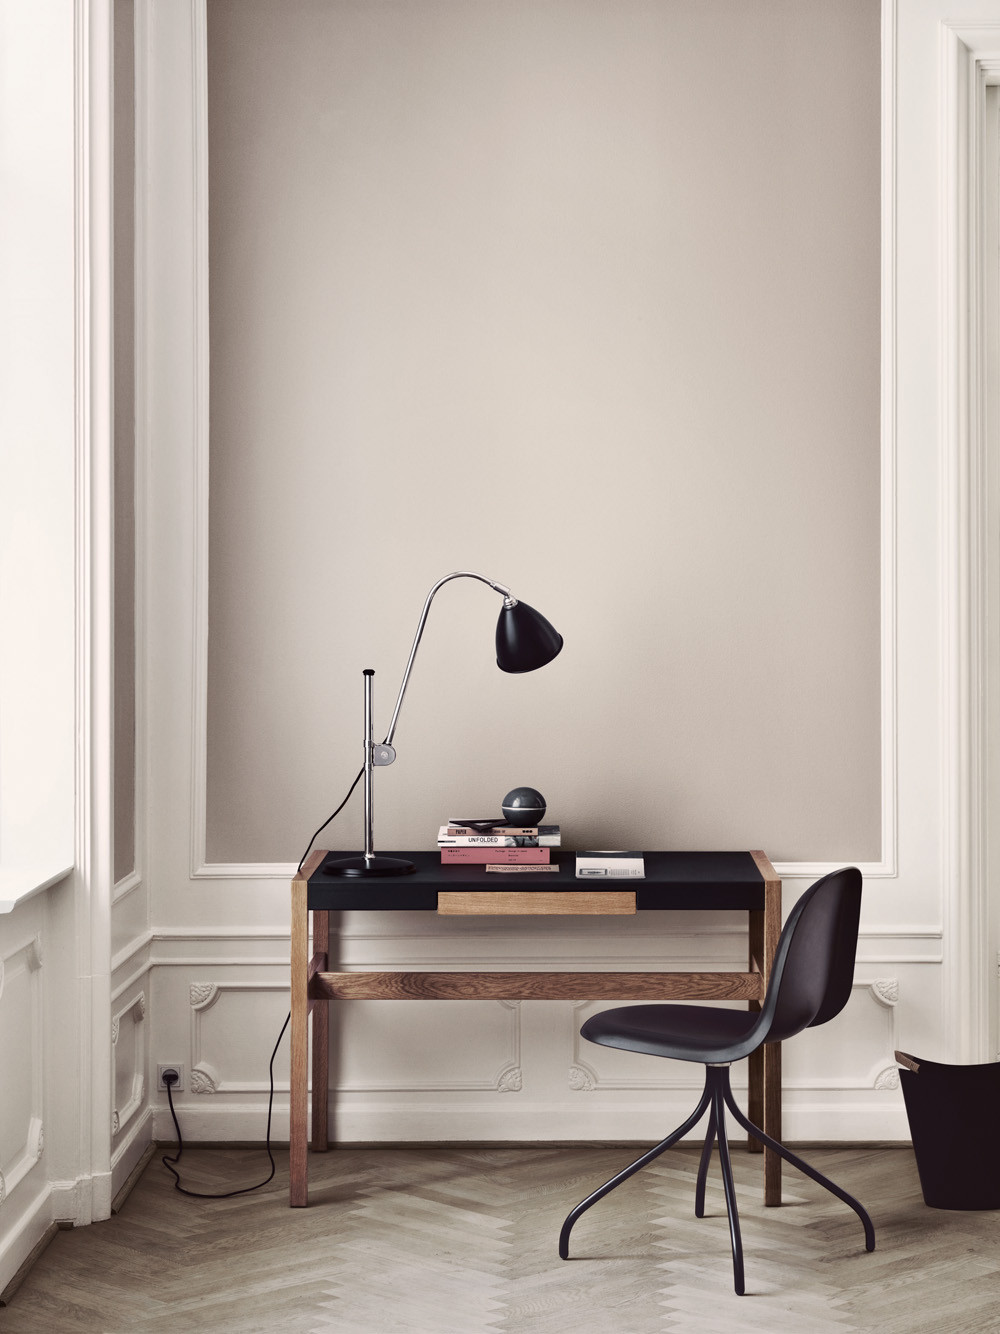 Best ideas about Best Desk Lamp . Save or Pin 10 of the best desk lamps — Design Hunter Now.